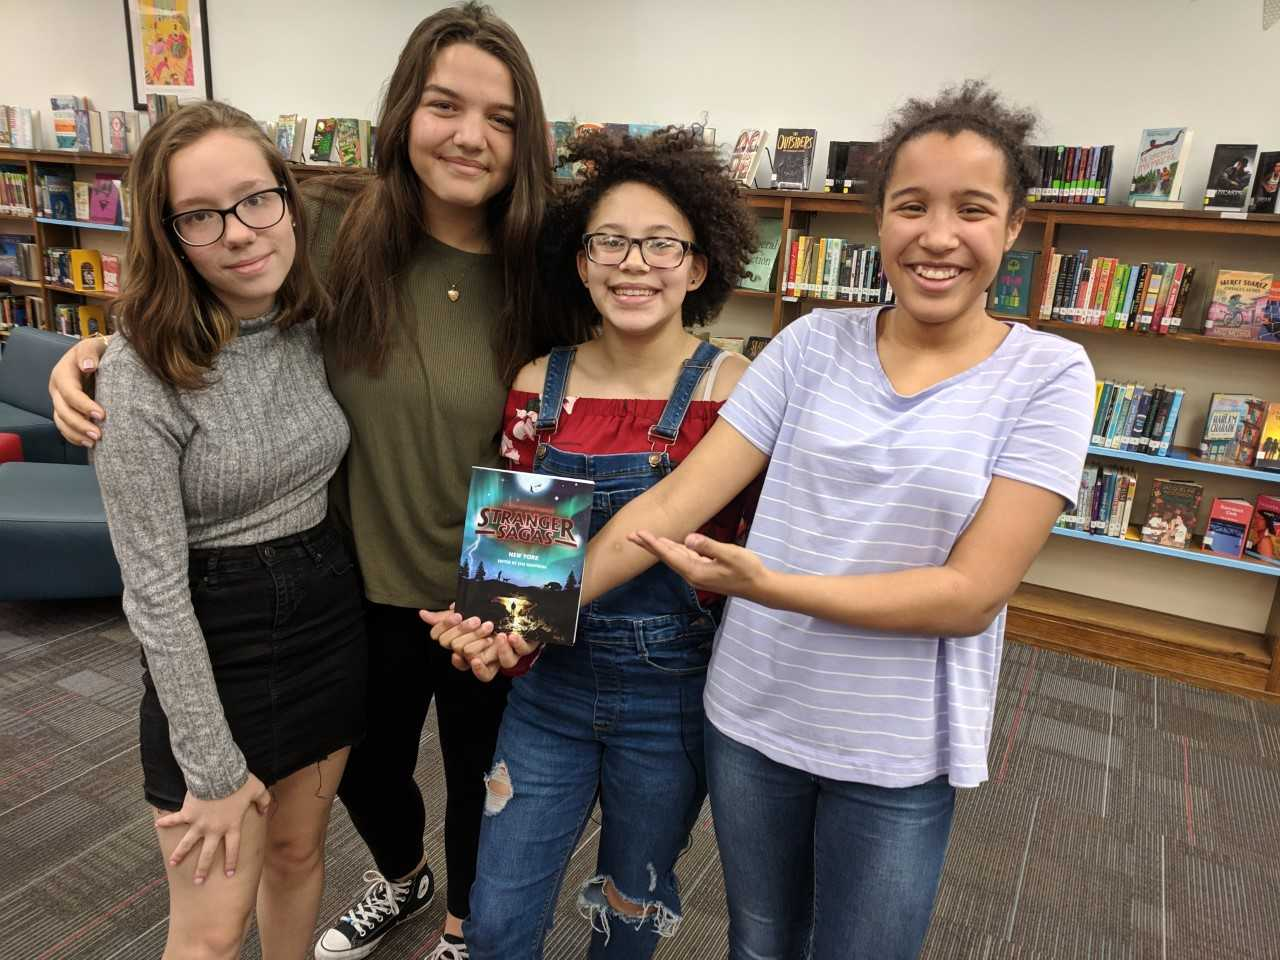 lincoln middle authors_1557413343198.jfif.jpg